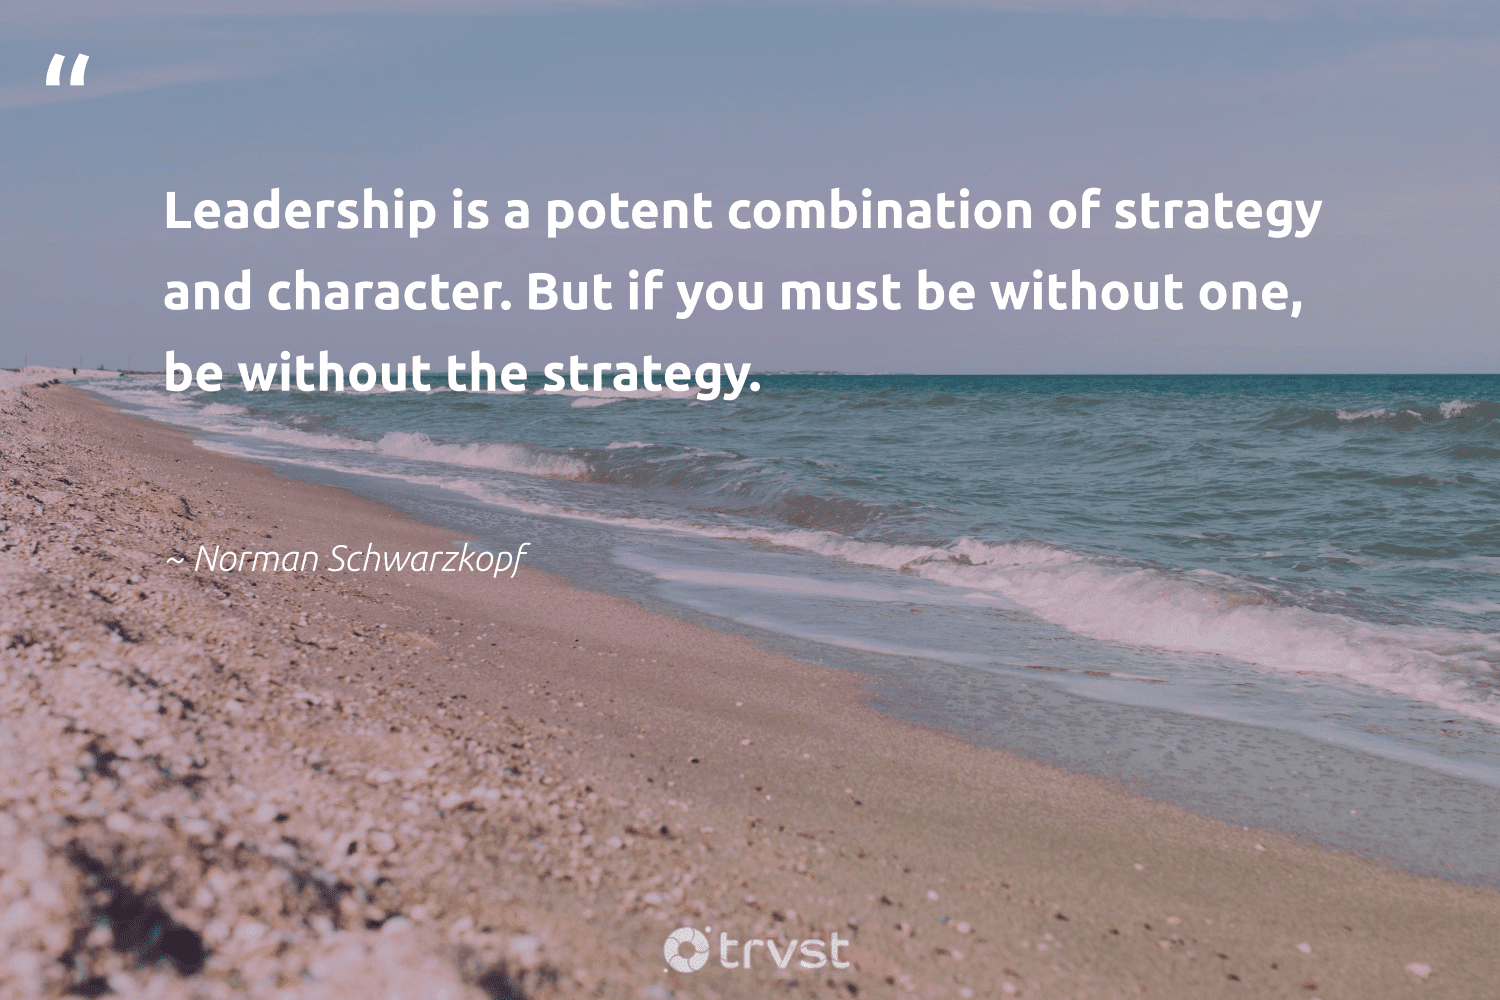 """Leadership is a potent combination of strategy and character. But if you must be without one, be without the strategy.""  - Norman Schwarzkopf #trvst #quotes #leadership #leadershipqualities #softskills #nevergiveup #bethechange #leadershipskills #begreat #futureofwork #socialchange #leadershipdevelopment"